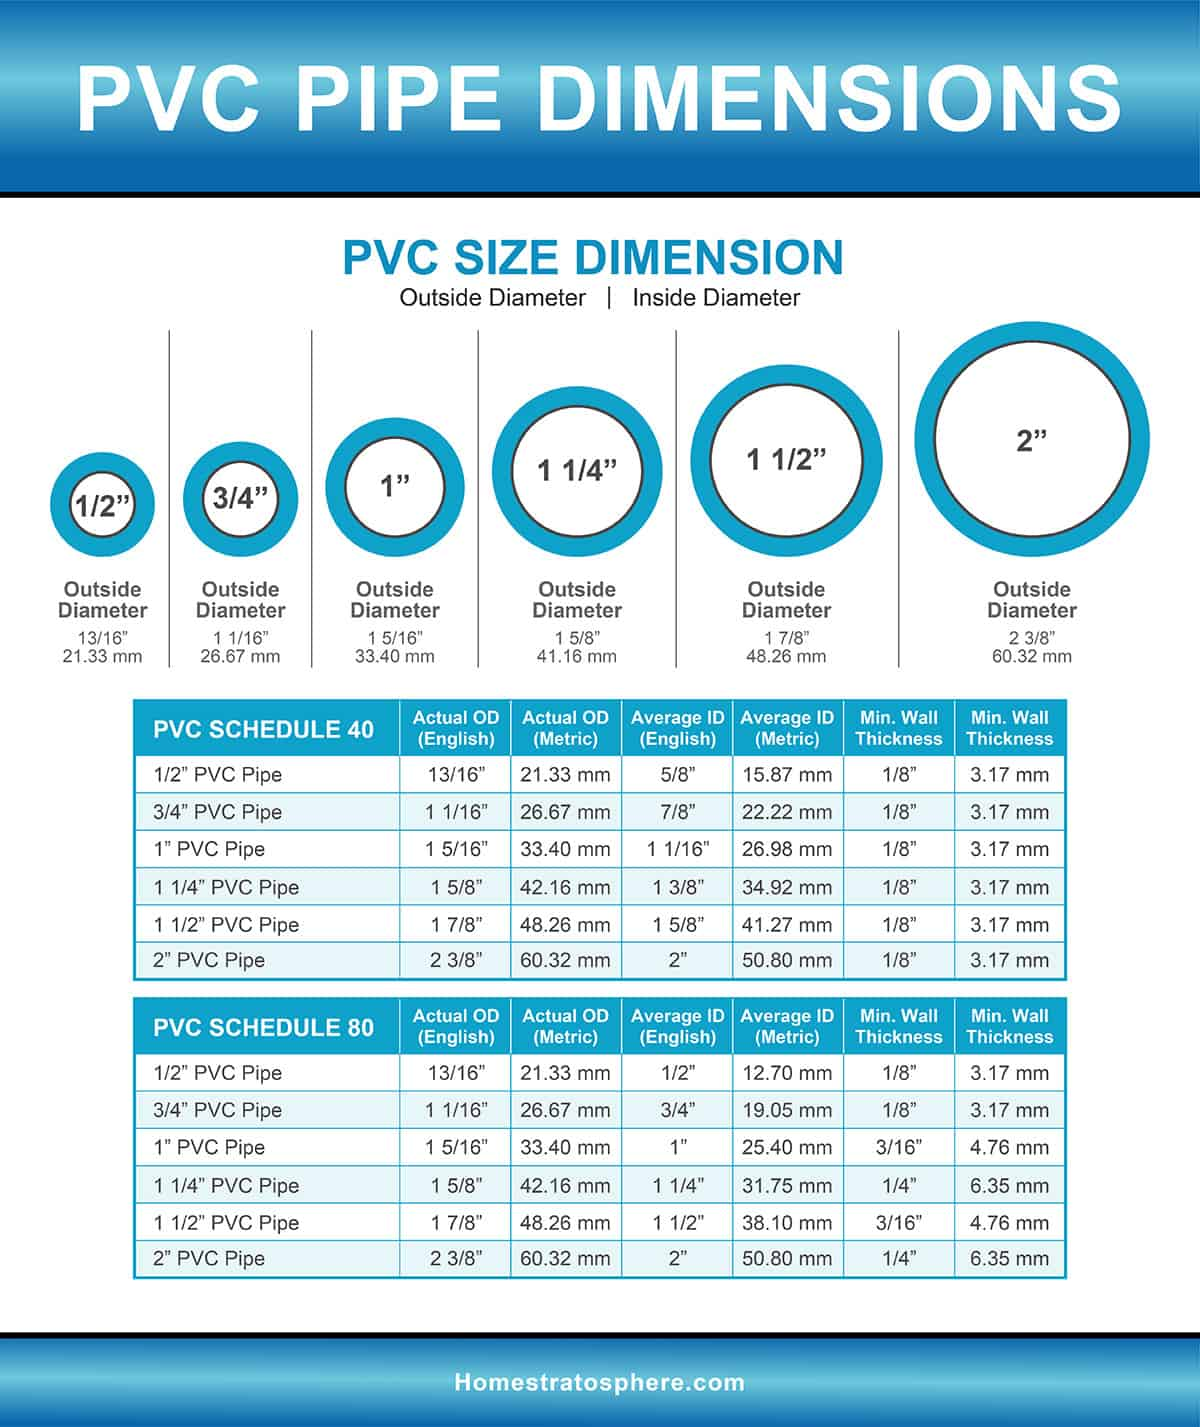 PVC Pipe sizes and dimensions chart